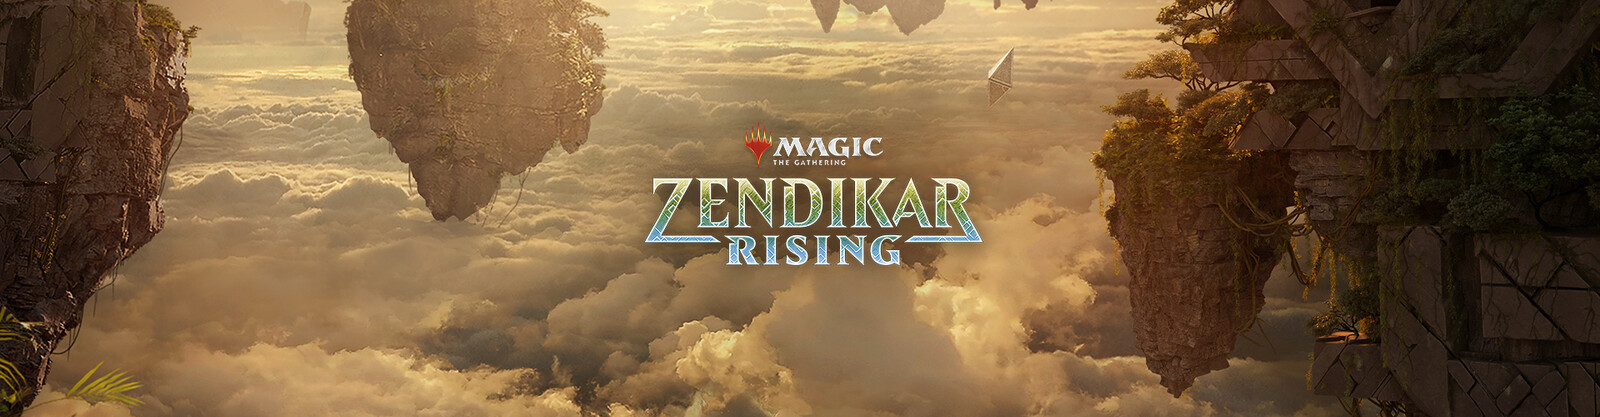 Magic the Gathering: Zendikar Rising